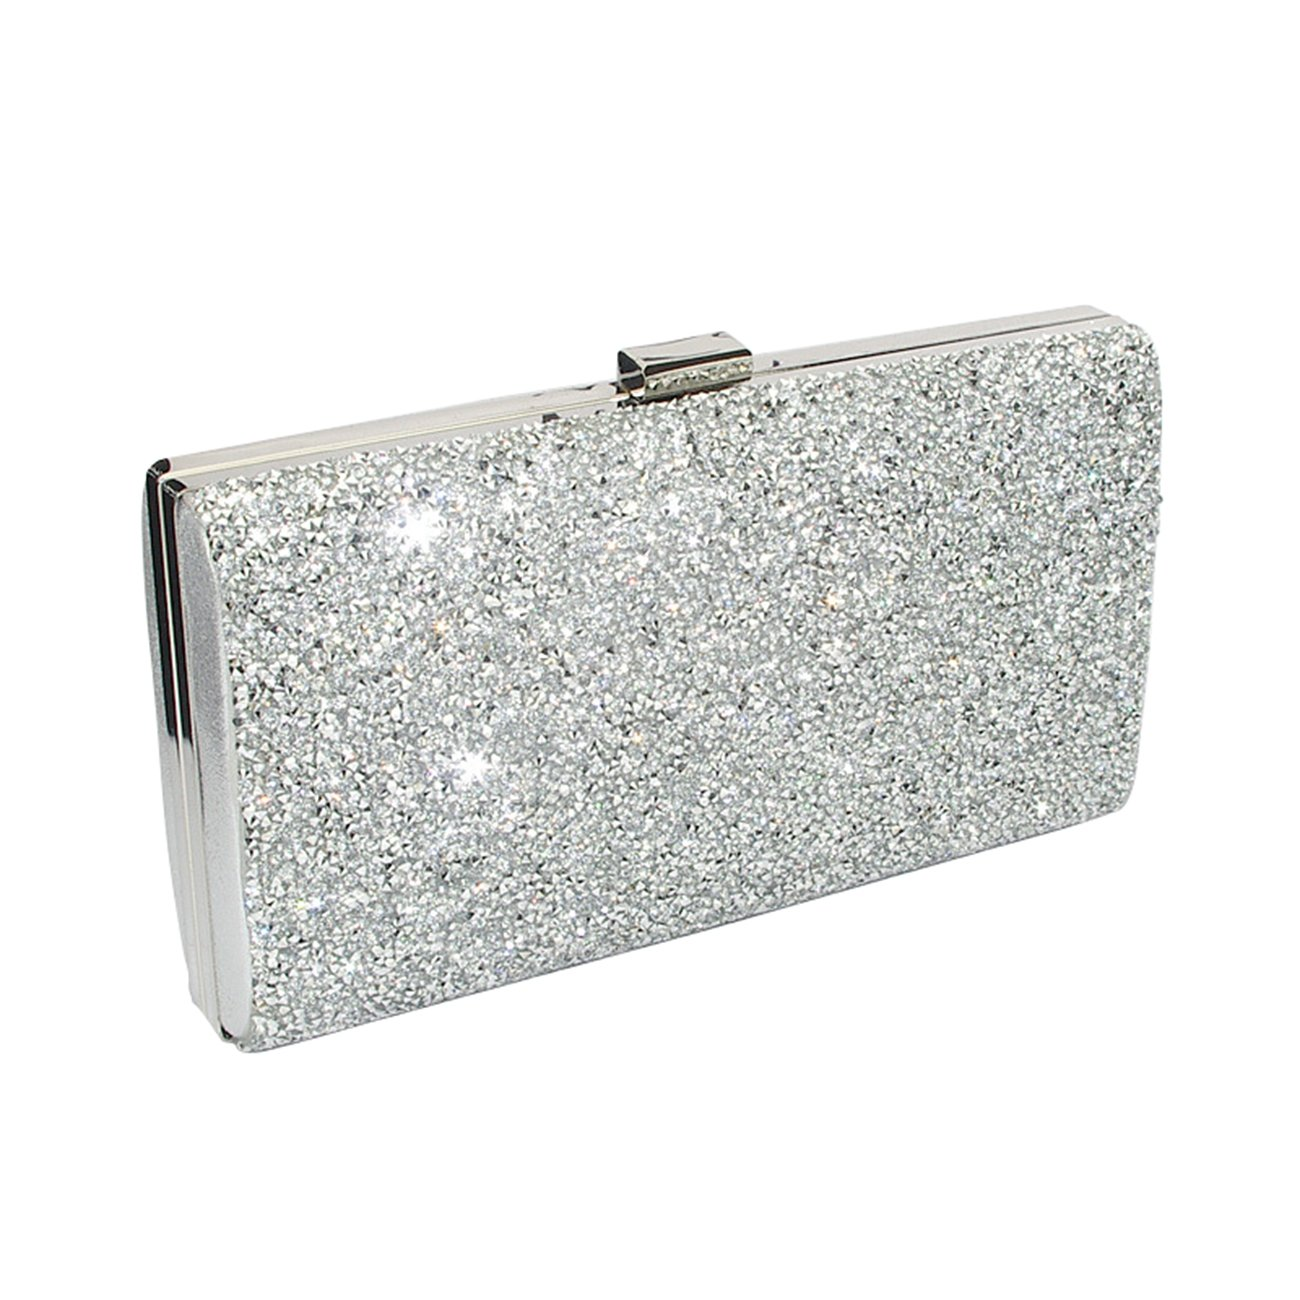 Clutch Evening Bag, Fit & Wit Giltter Beaded Flap Clutch Evening Handbag Purse